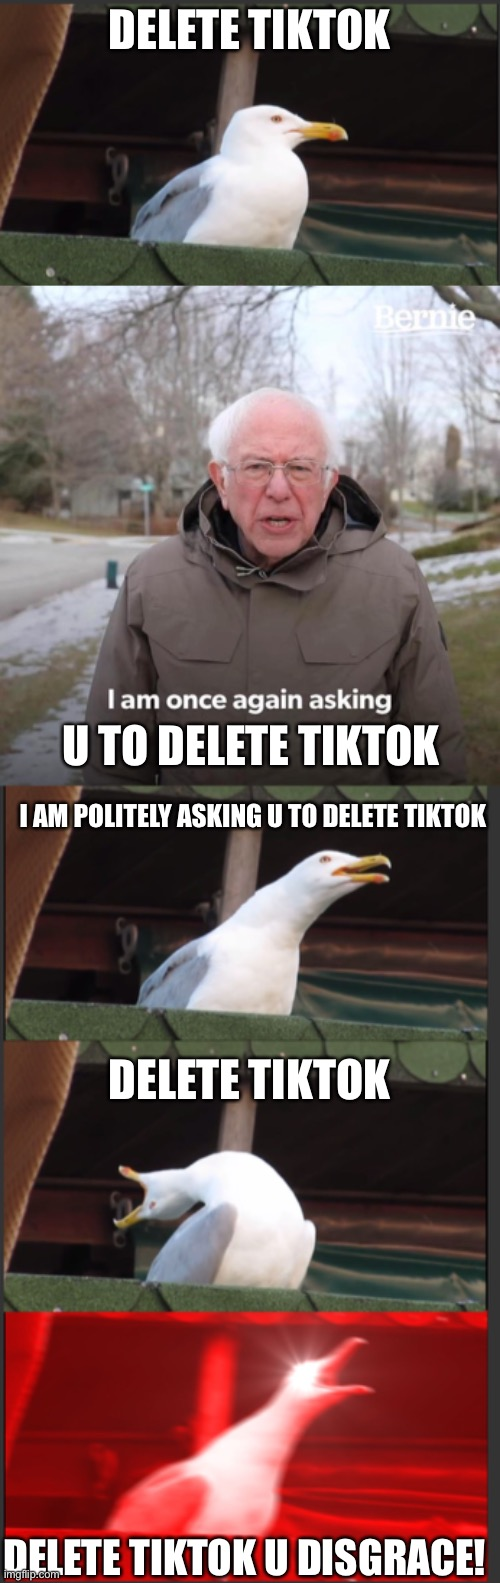 Delete TikTok |  DELETE TIKTOK; U TO DELETE TIKTOK; I AM POLITELY ASKING U TO DELETE TIKTOK; DELETE TIKTOK; DELETE TIKTOK U DISGRACE! | image tagged in memes,bernie i am once again asking for your support | made w/ Imgflip meme maker